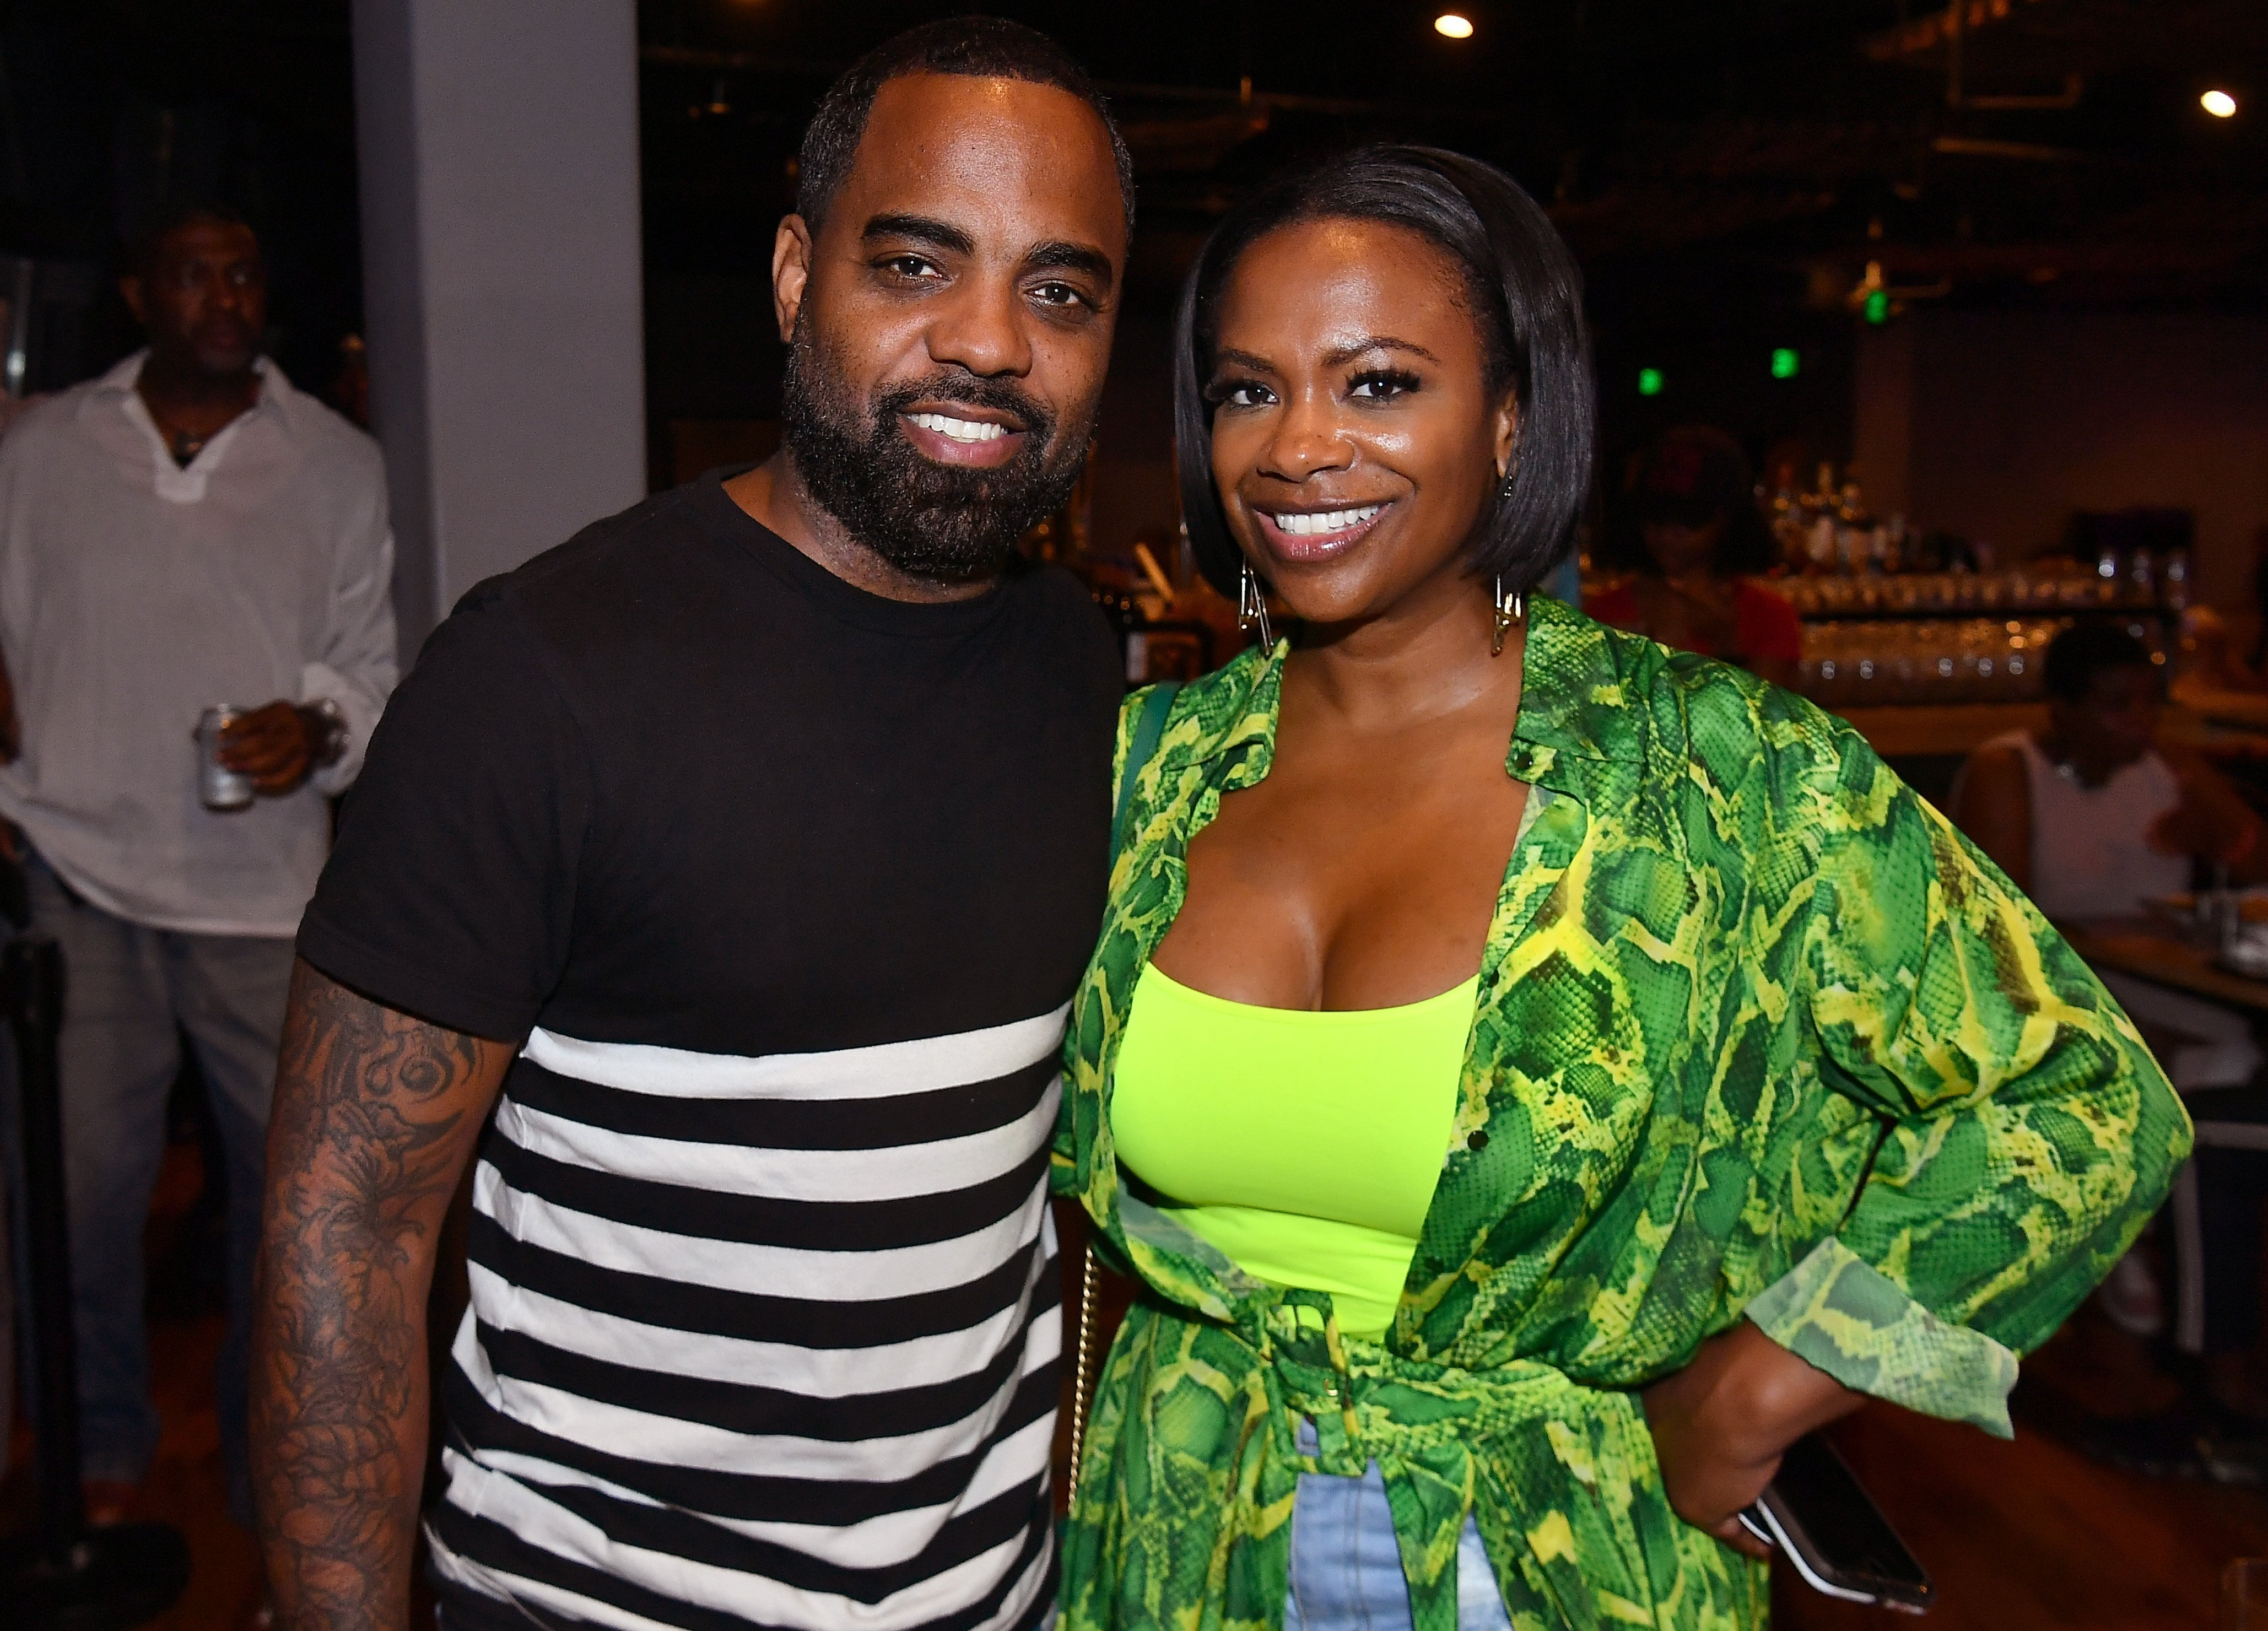 Todd Tucker & Kandi Burruss at Majic 107.5 After Dark on Sept. 03, 2019 in Atlanta, Georgia | Photo: Getty Images